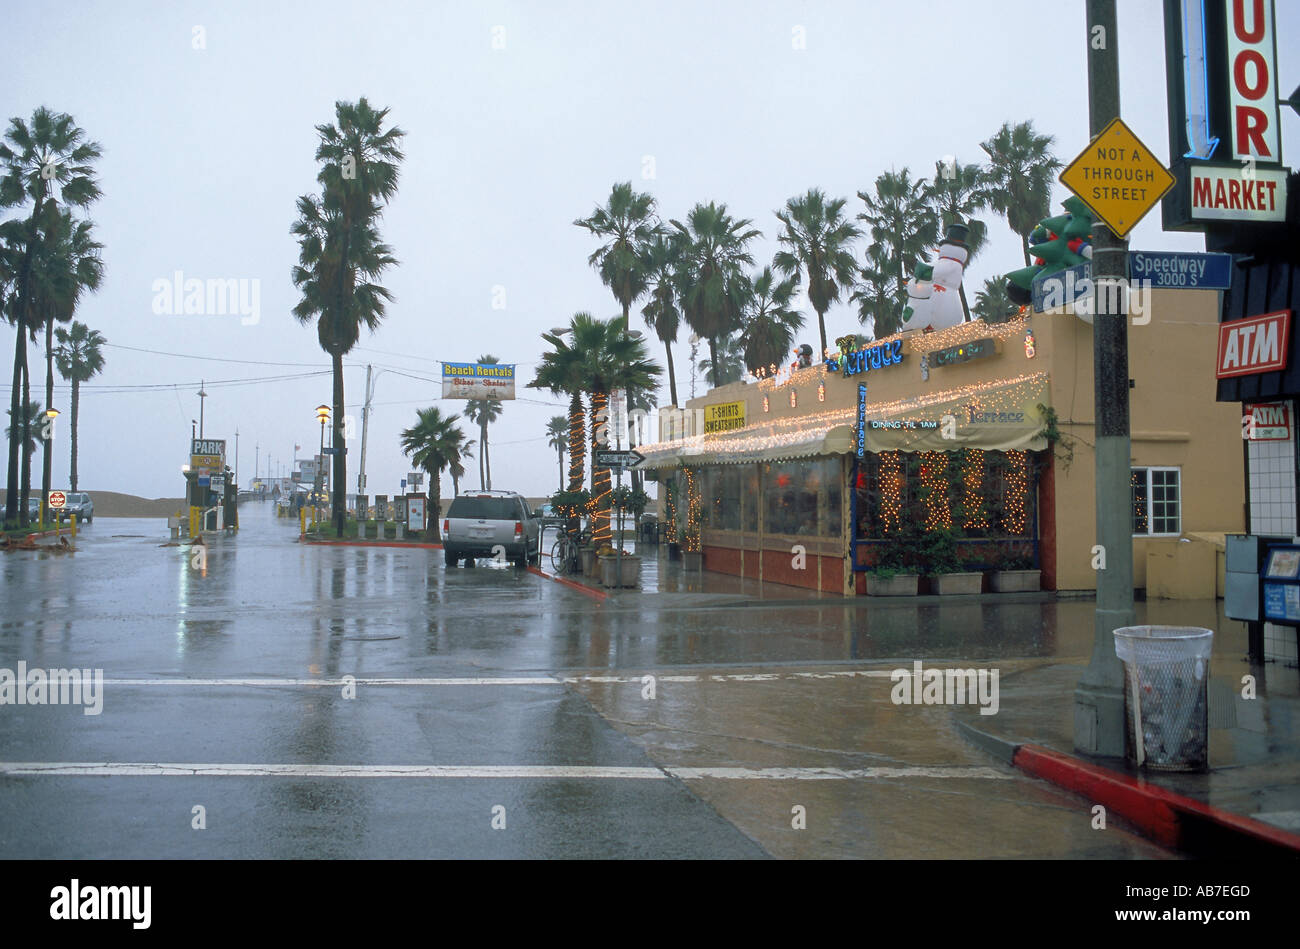 1f9b3d0ade2 Winter in Southern California can be wet as seen here in Venice ...